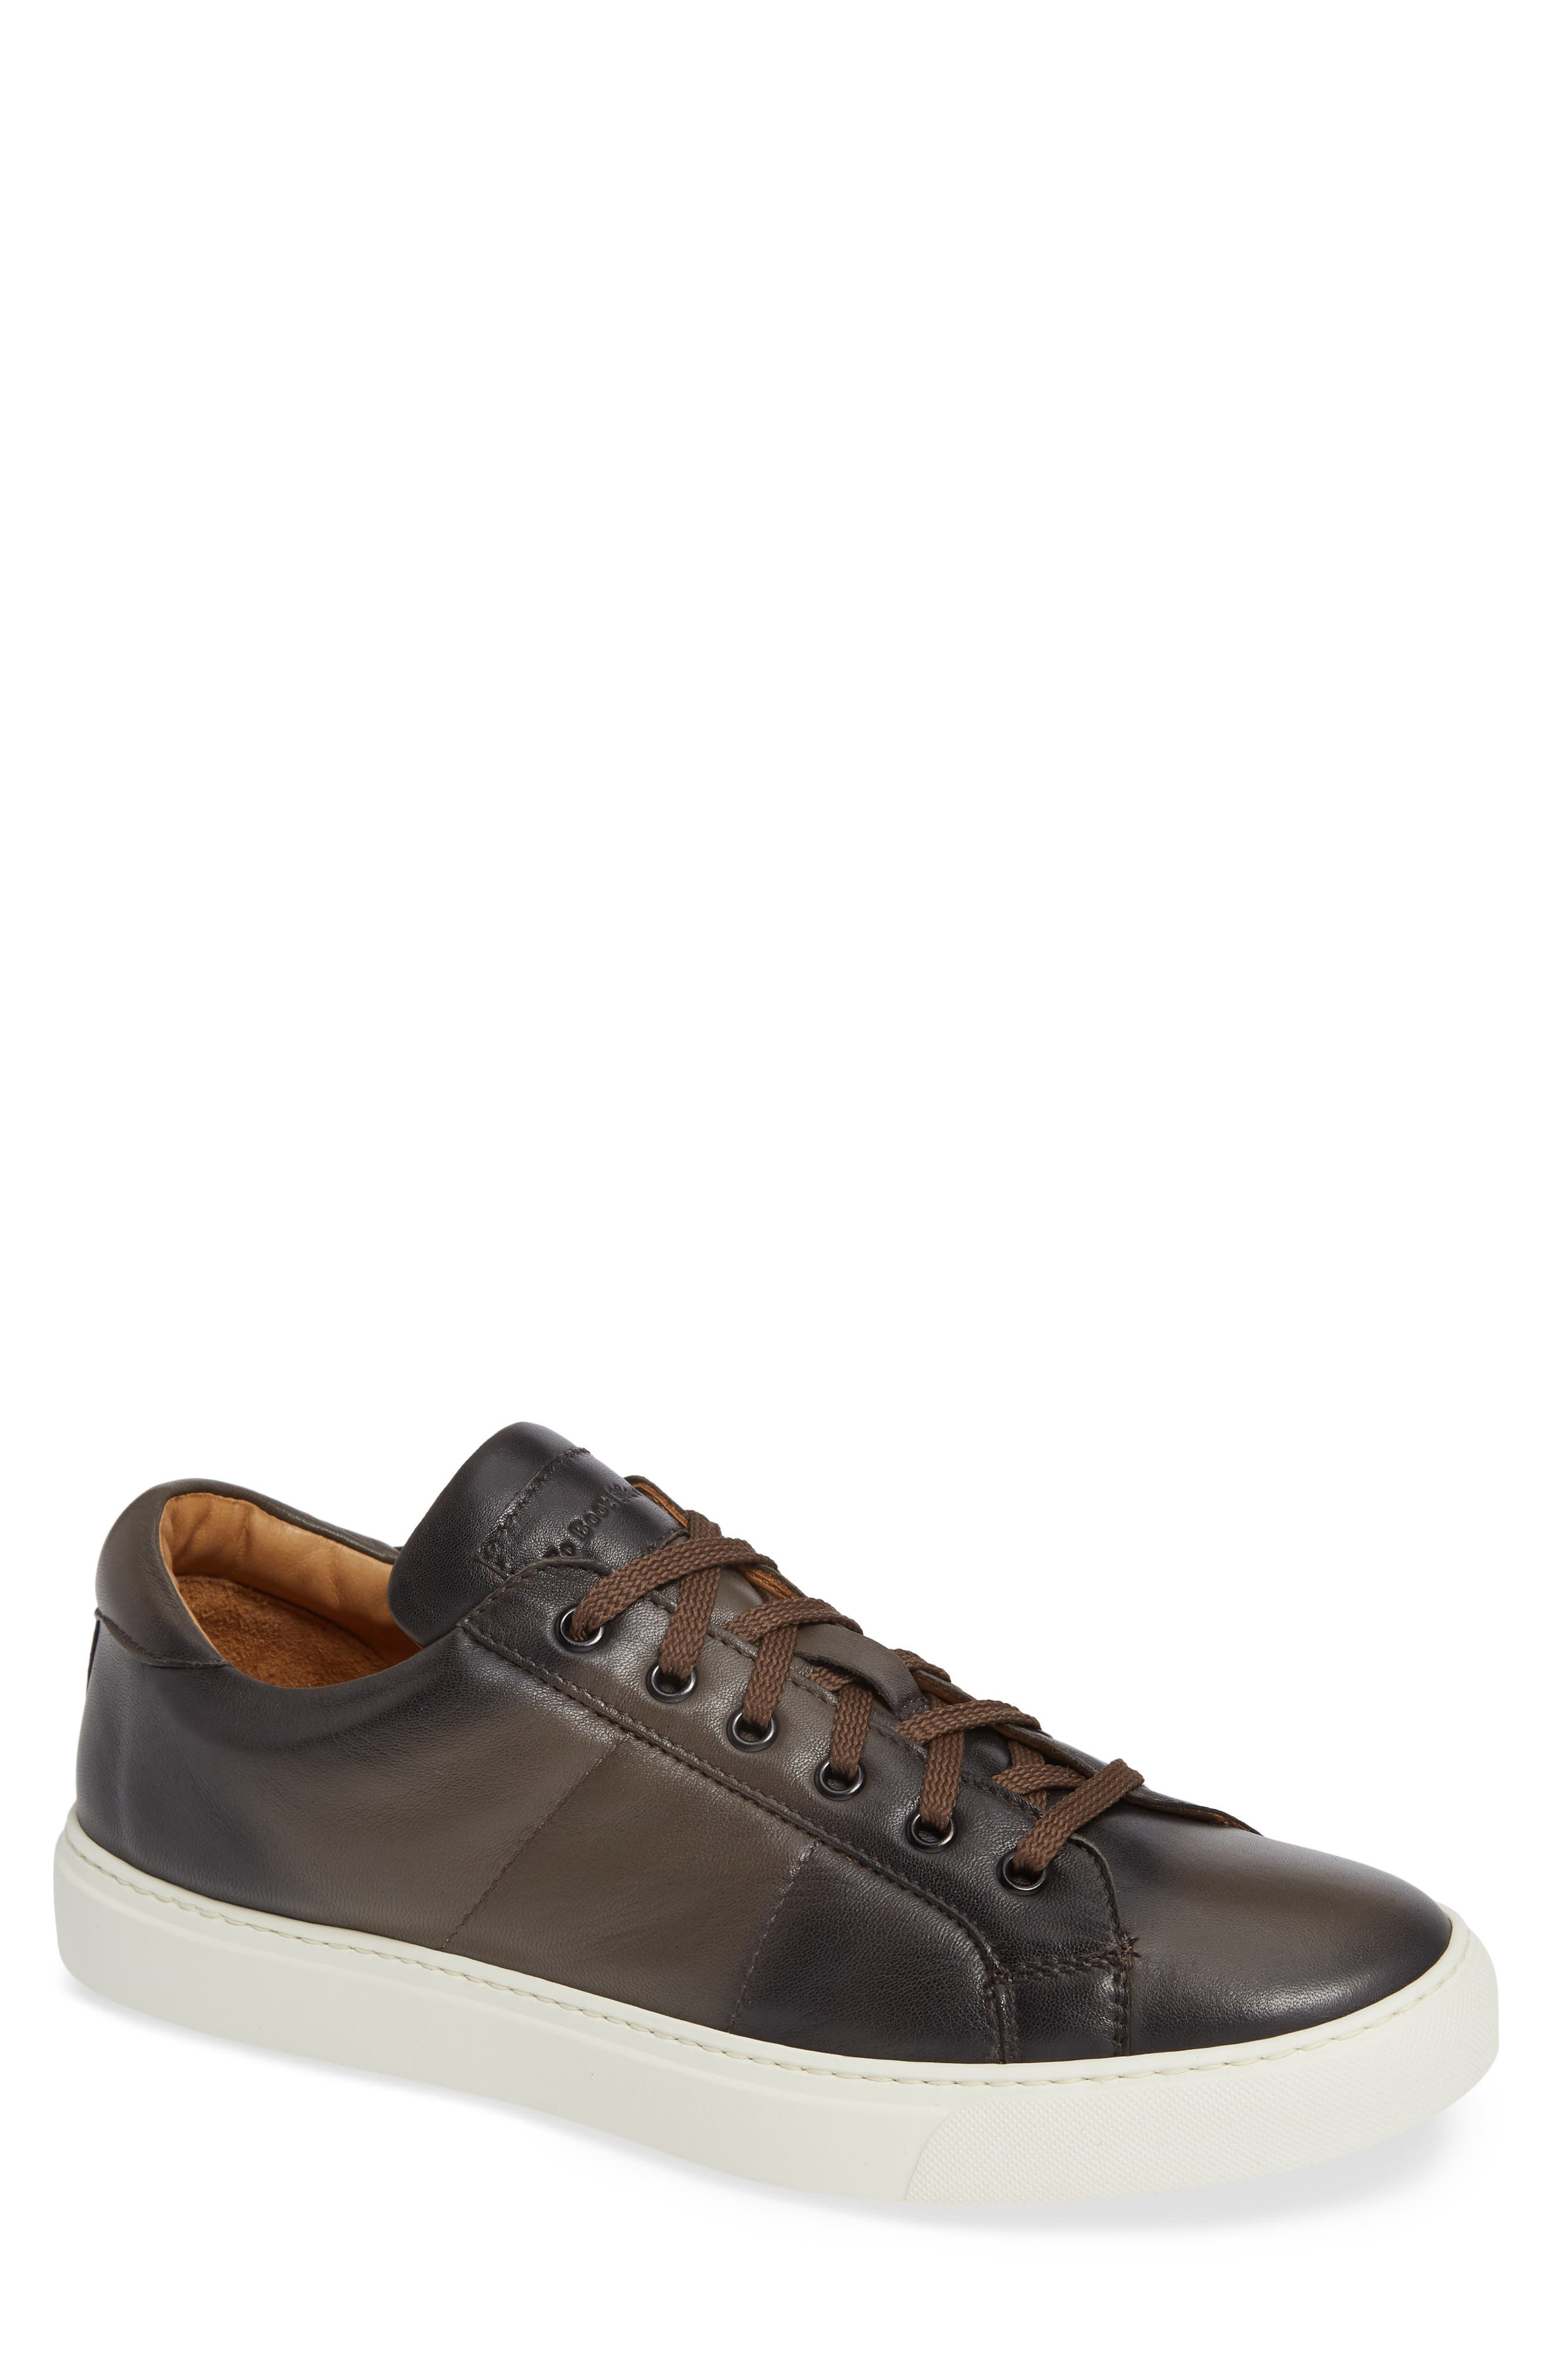 Colton Sneaker,                         Main,                         color, TAUPE GREY LEATHER